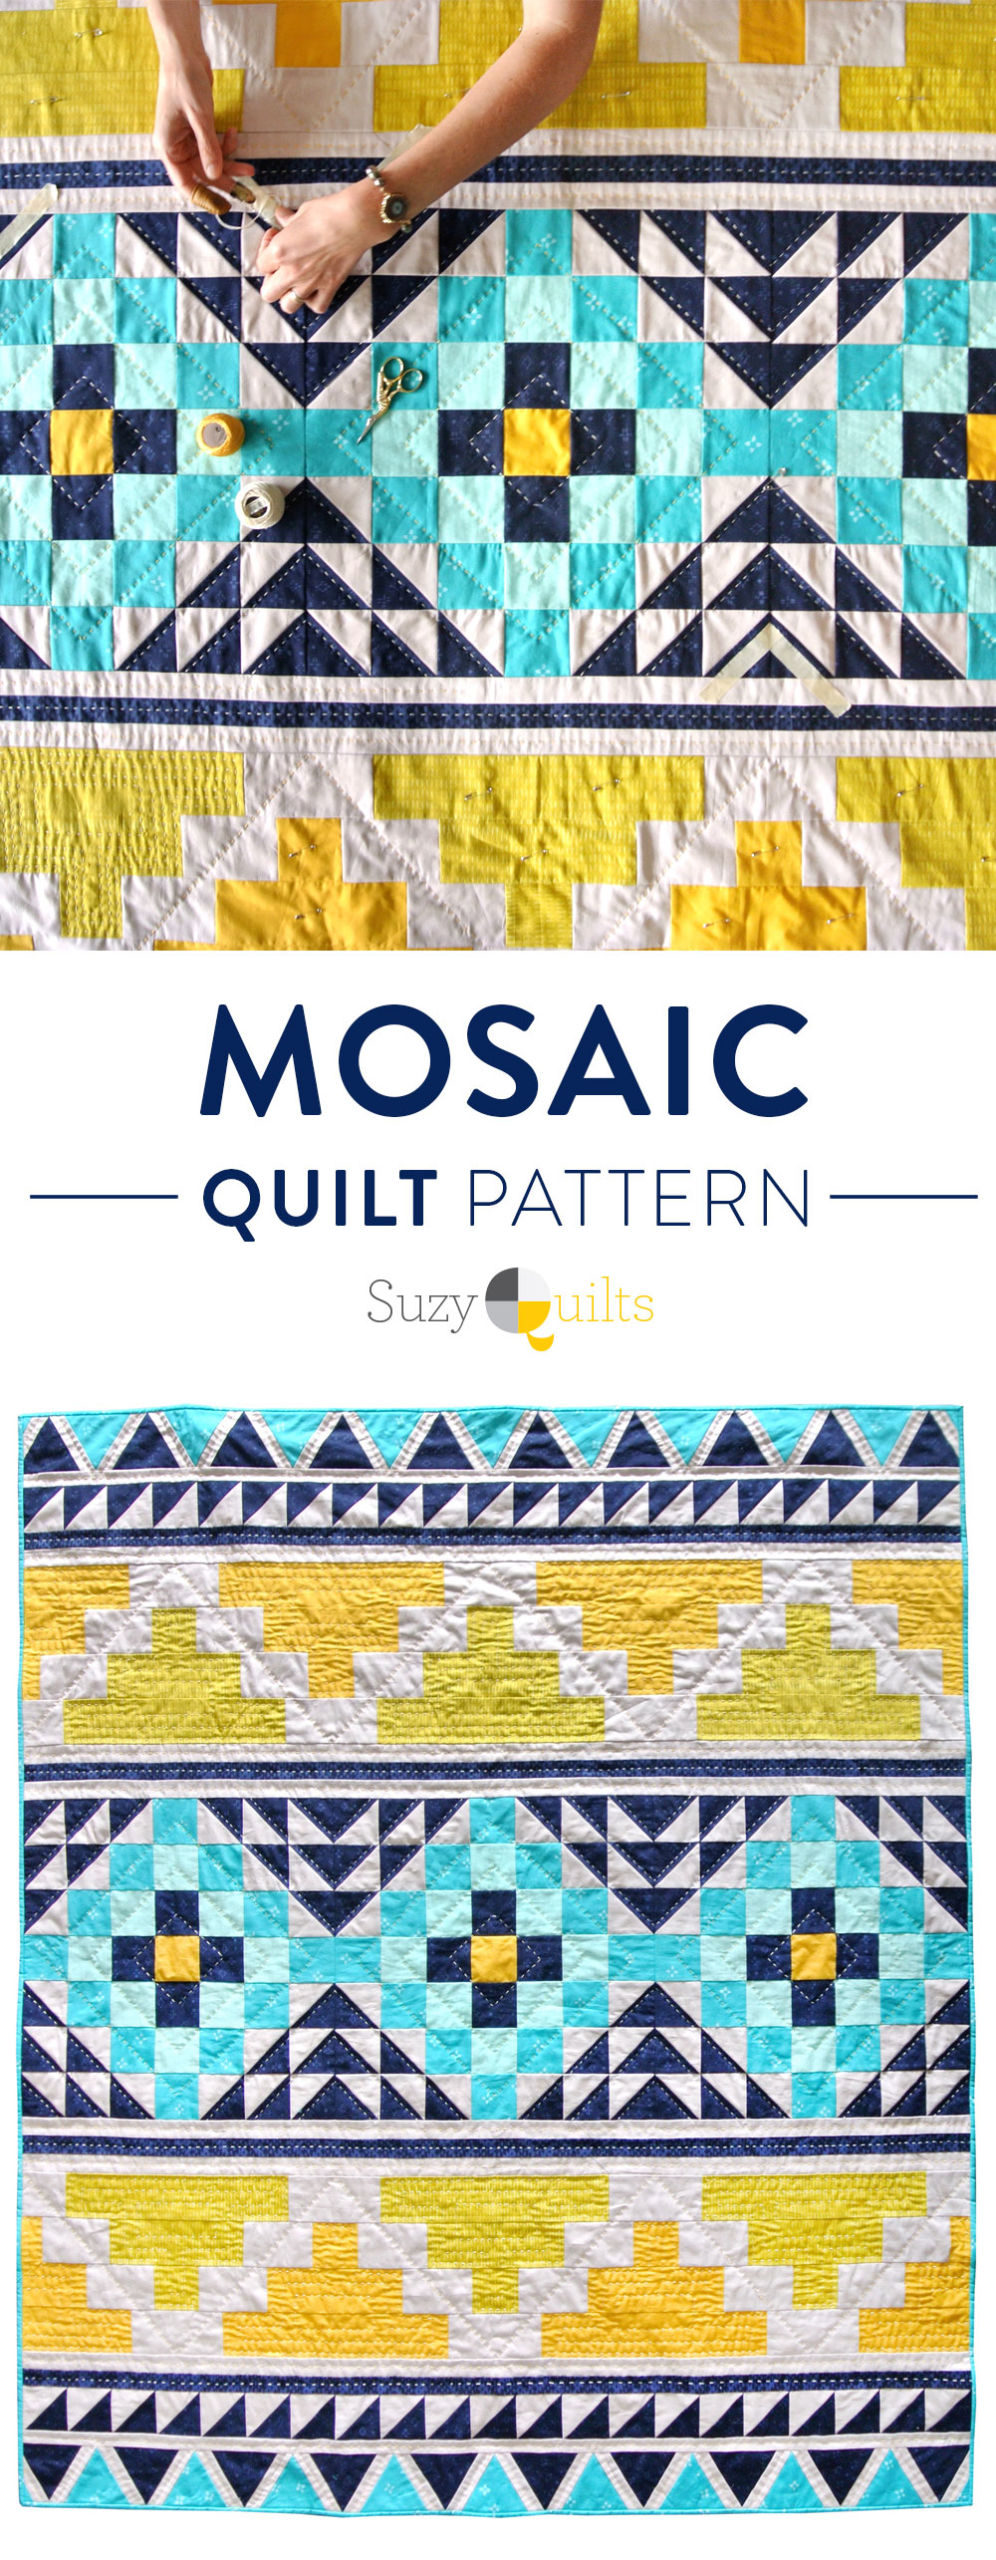 This fun modern quilt pattern looks like tiles of a mosaic!